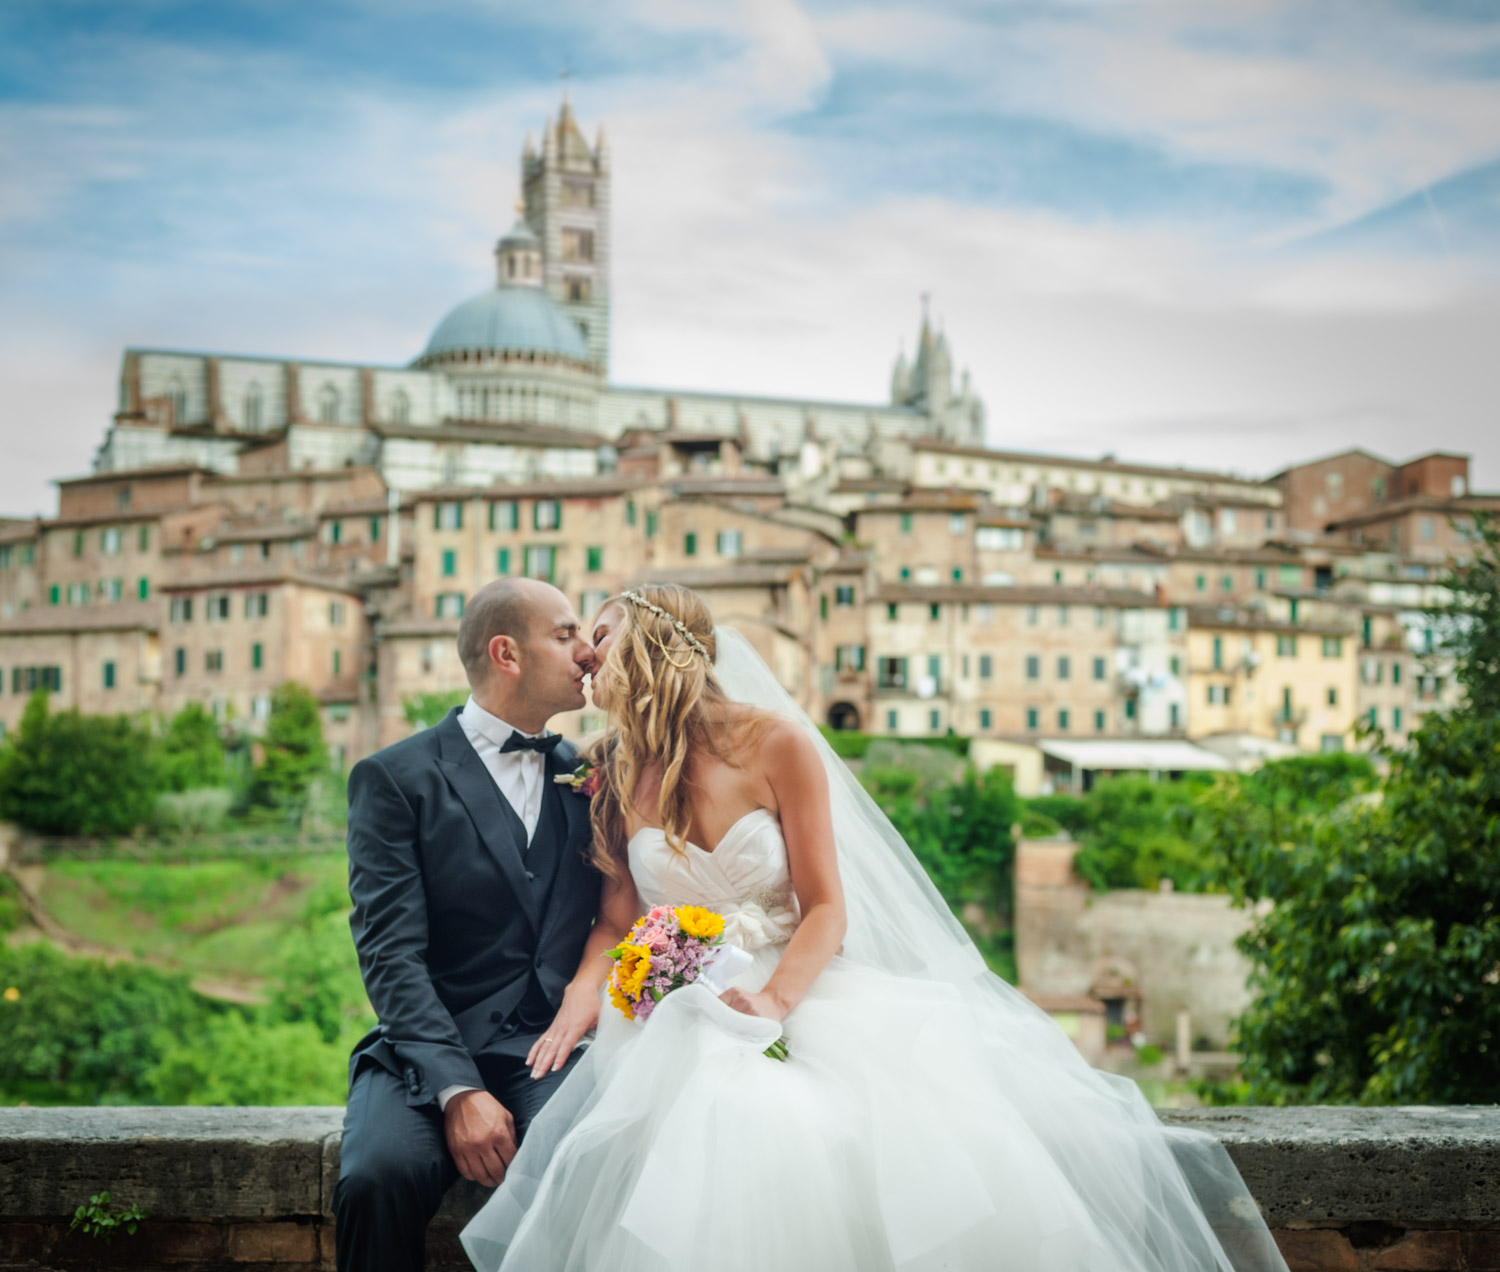 Portrait of wedding by wedding photographers at Ripe Photography in Siena, Italy.